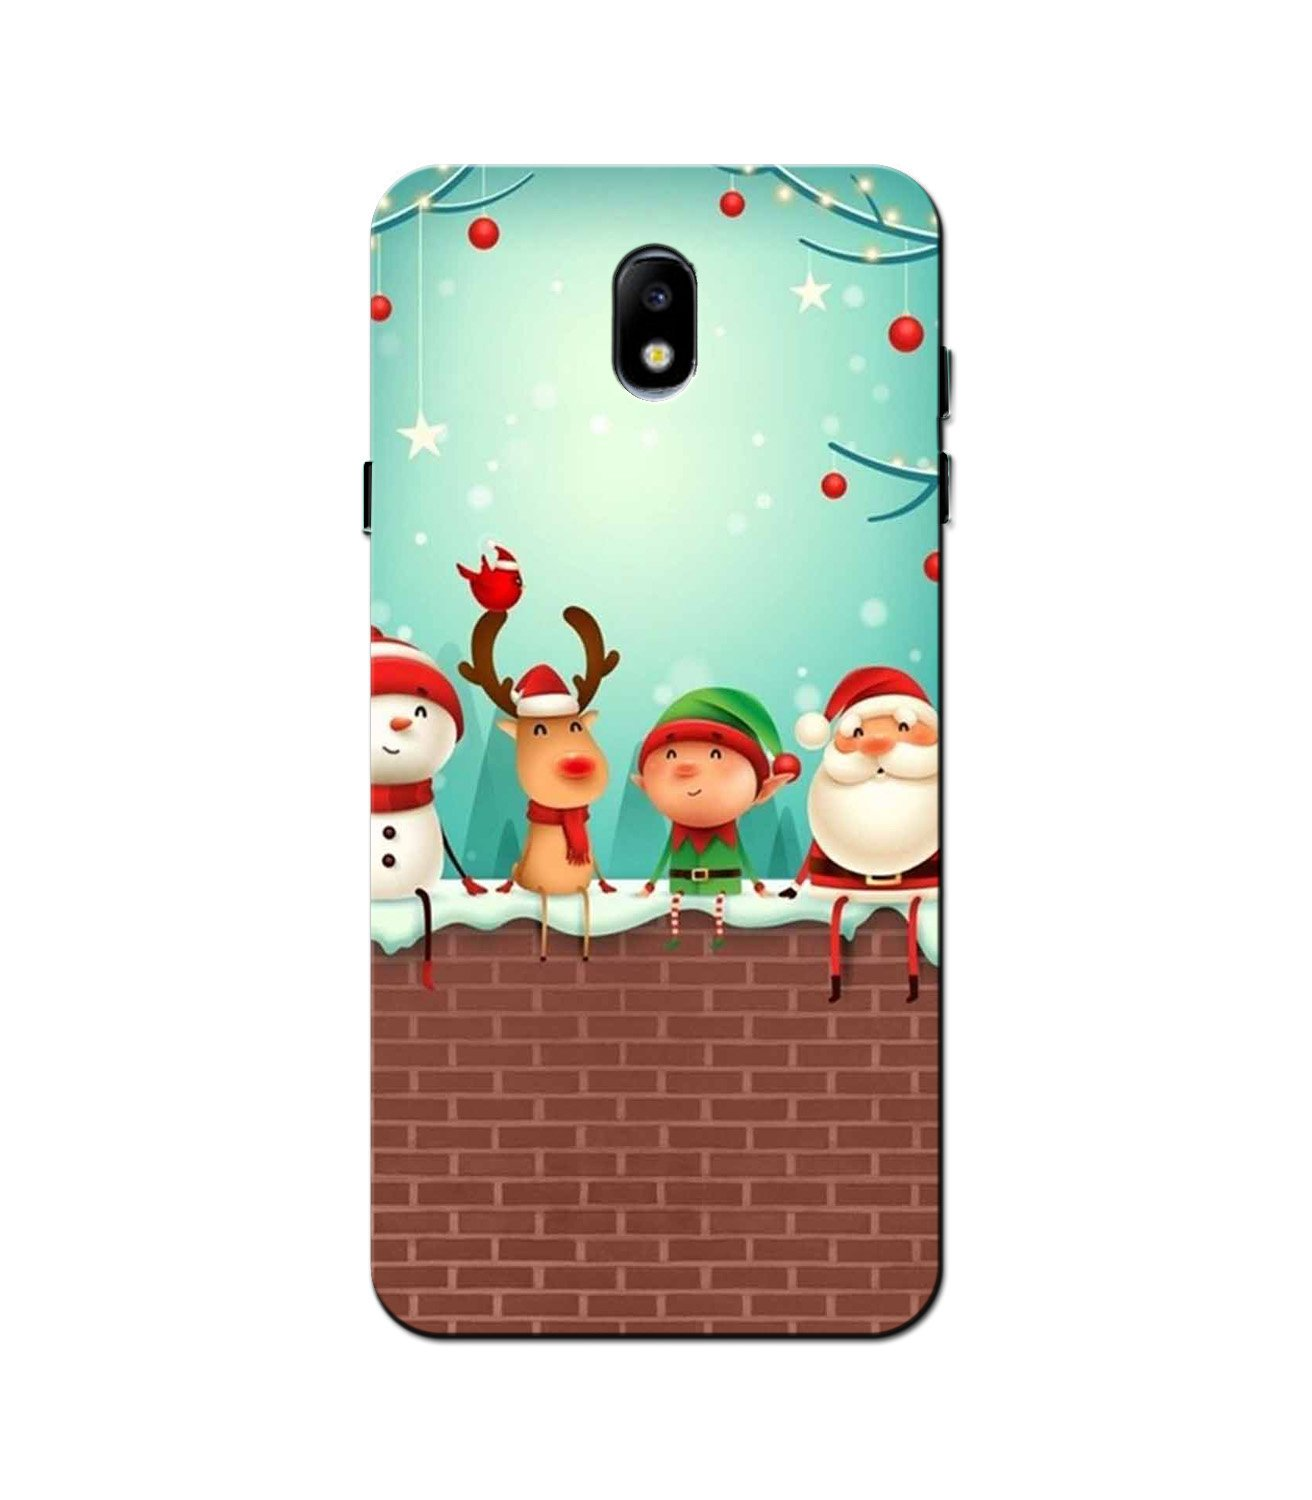 Santa Claus Mobile Back Case for Galaxy J5 Pro  (Design - 334)